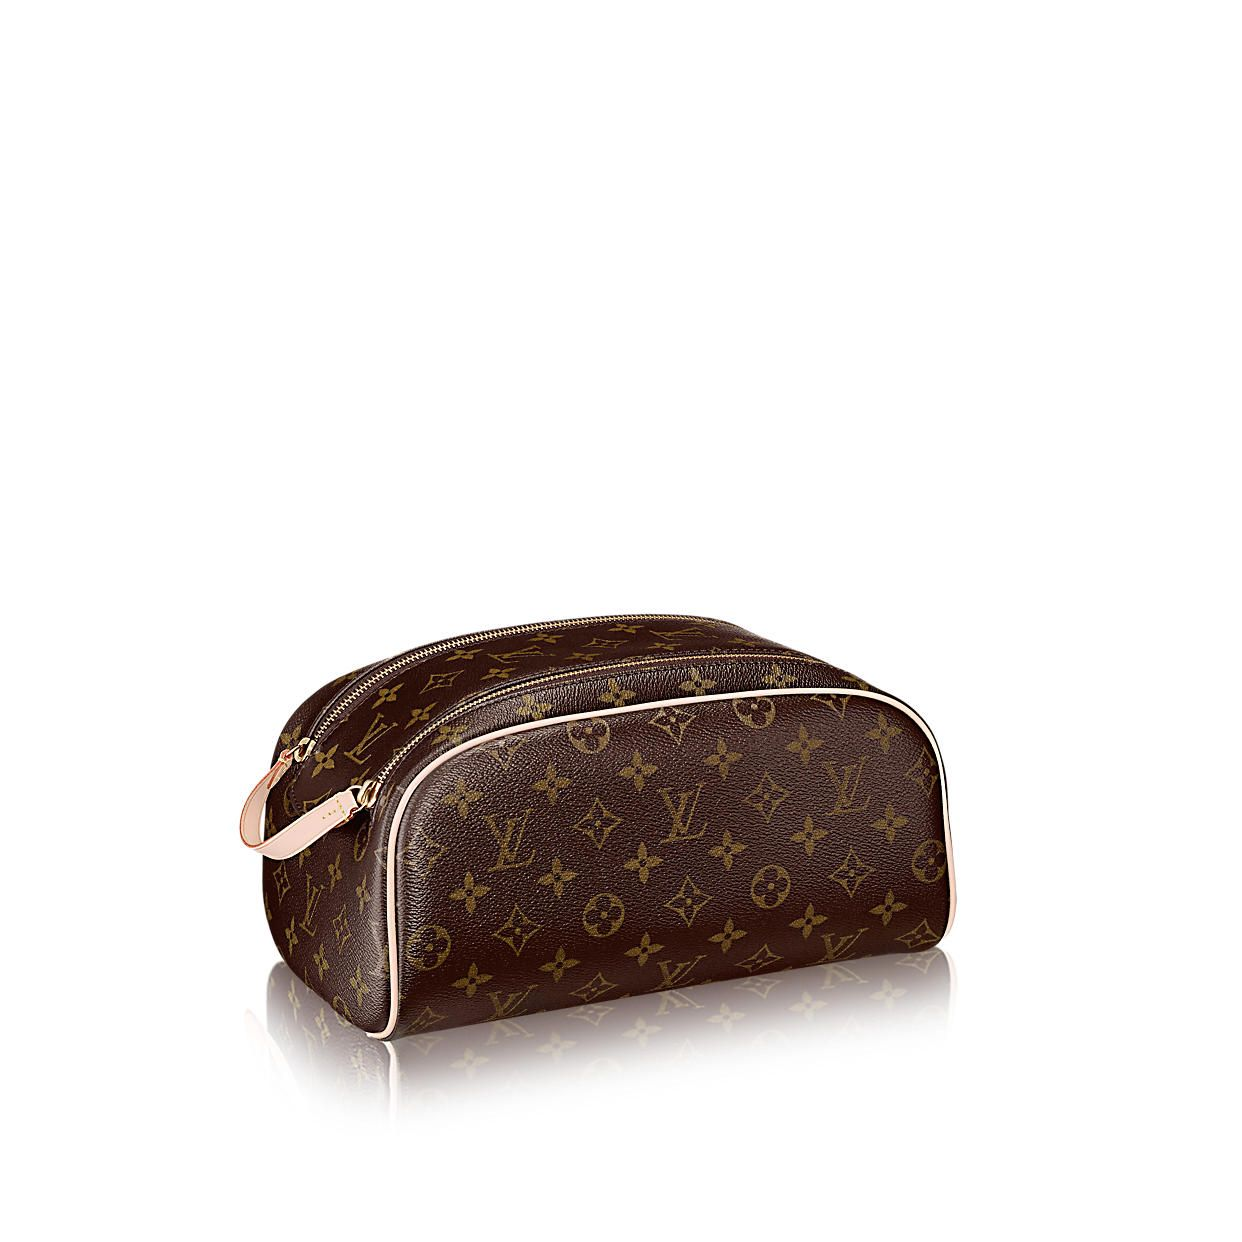 d149ce6bb King size Toiletry Bag Monogram Canvas in WOMEN's TRAVEL collections by Louis  Vuitton